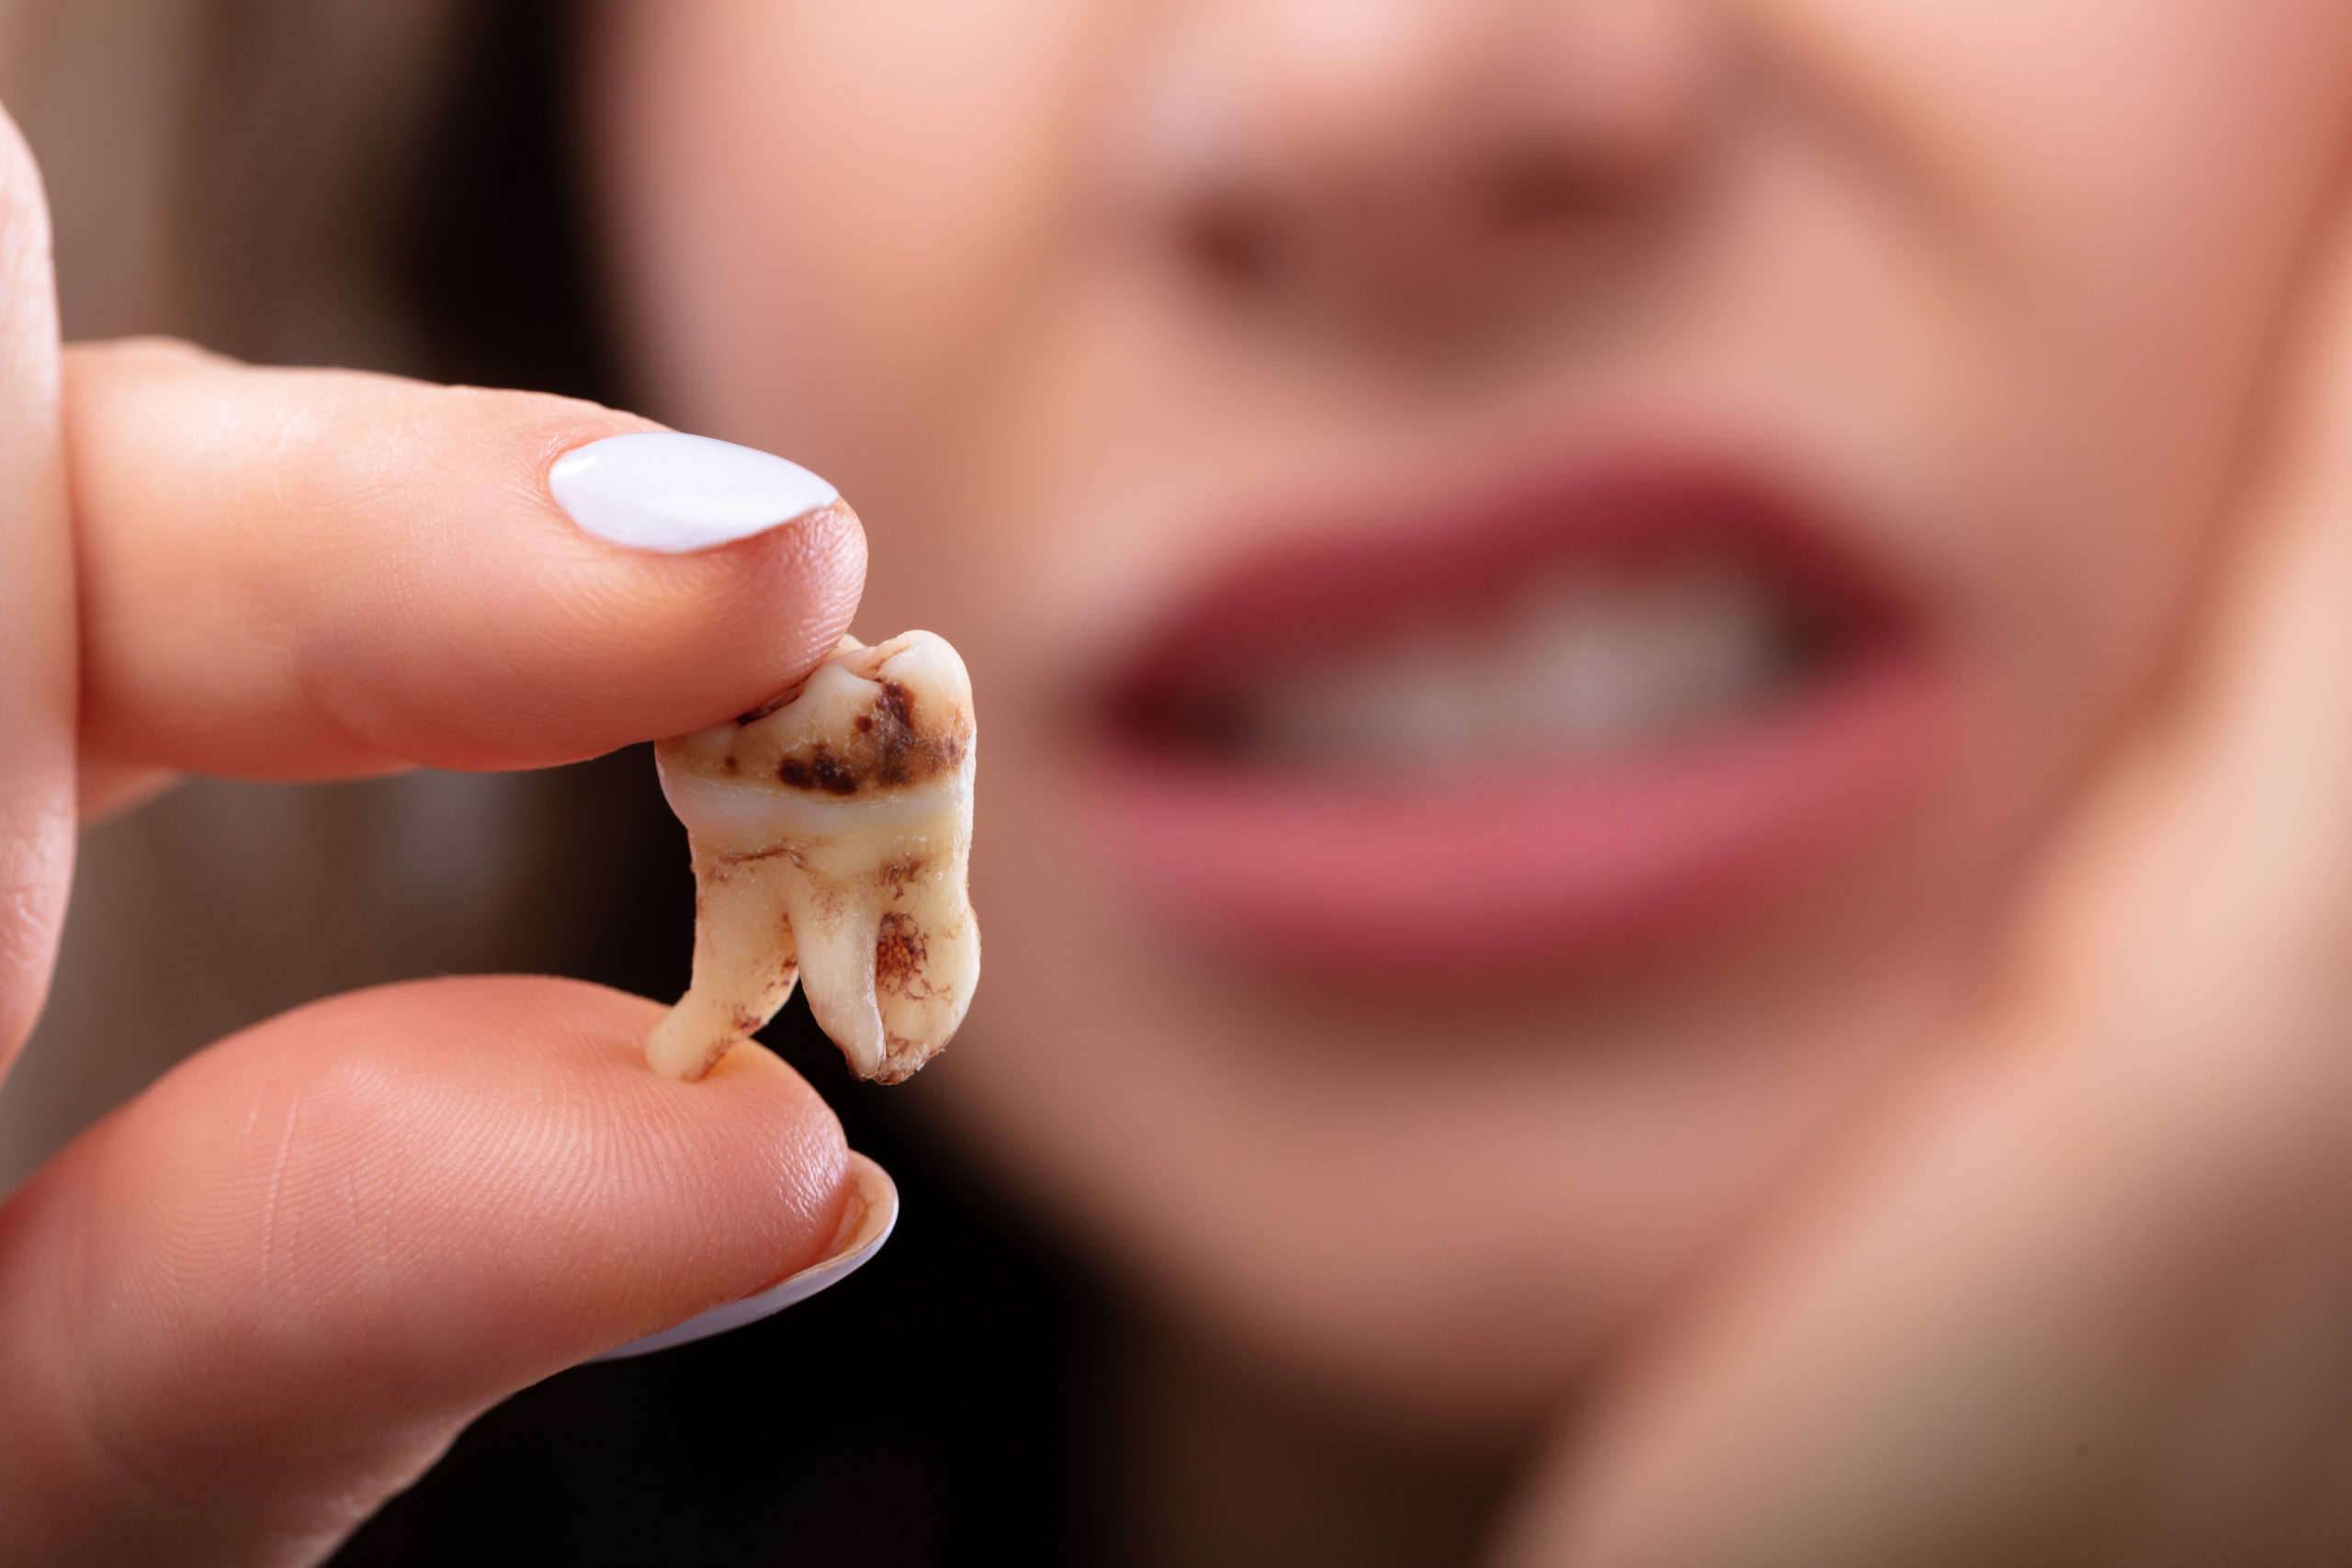 Close-up Of A Woman's Hand Holding Decay Tooth